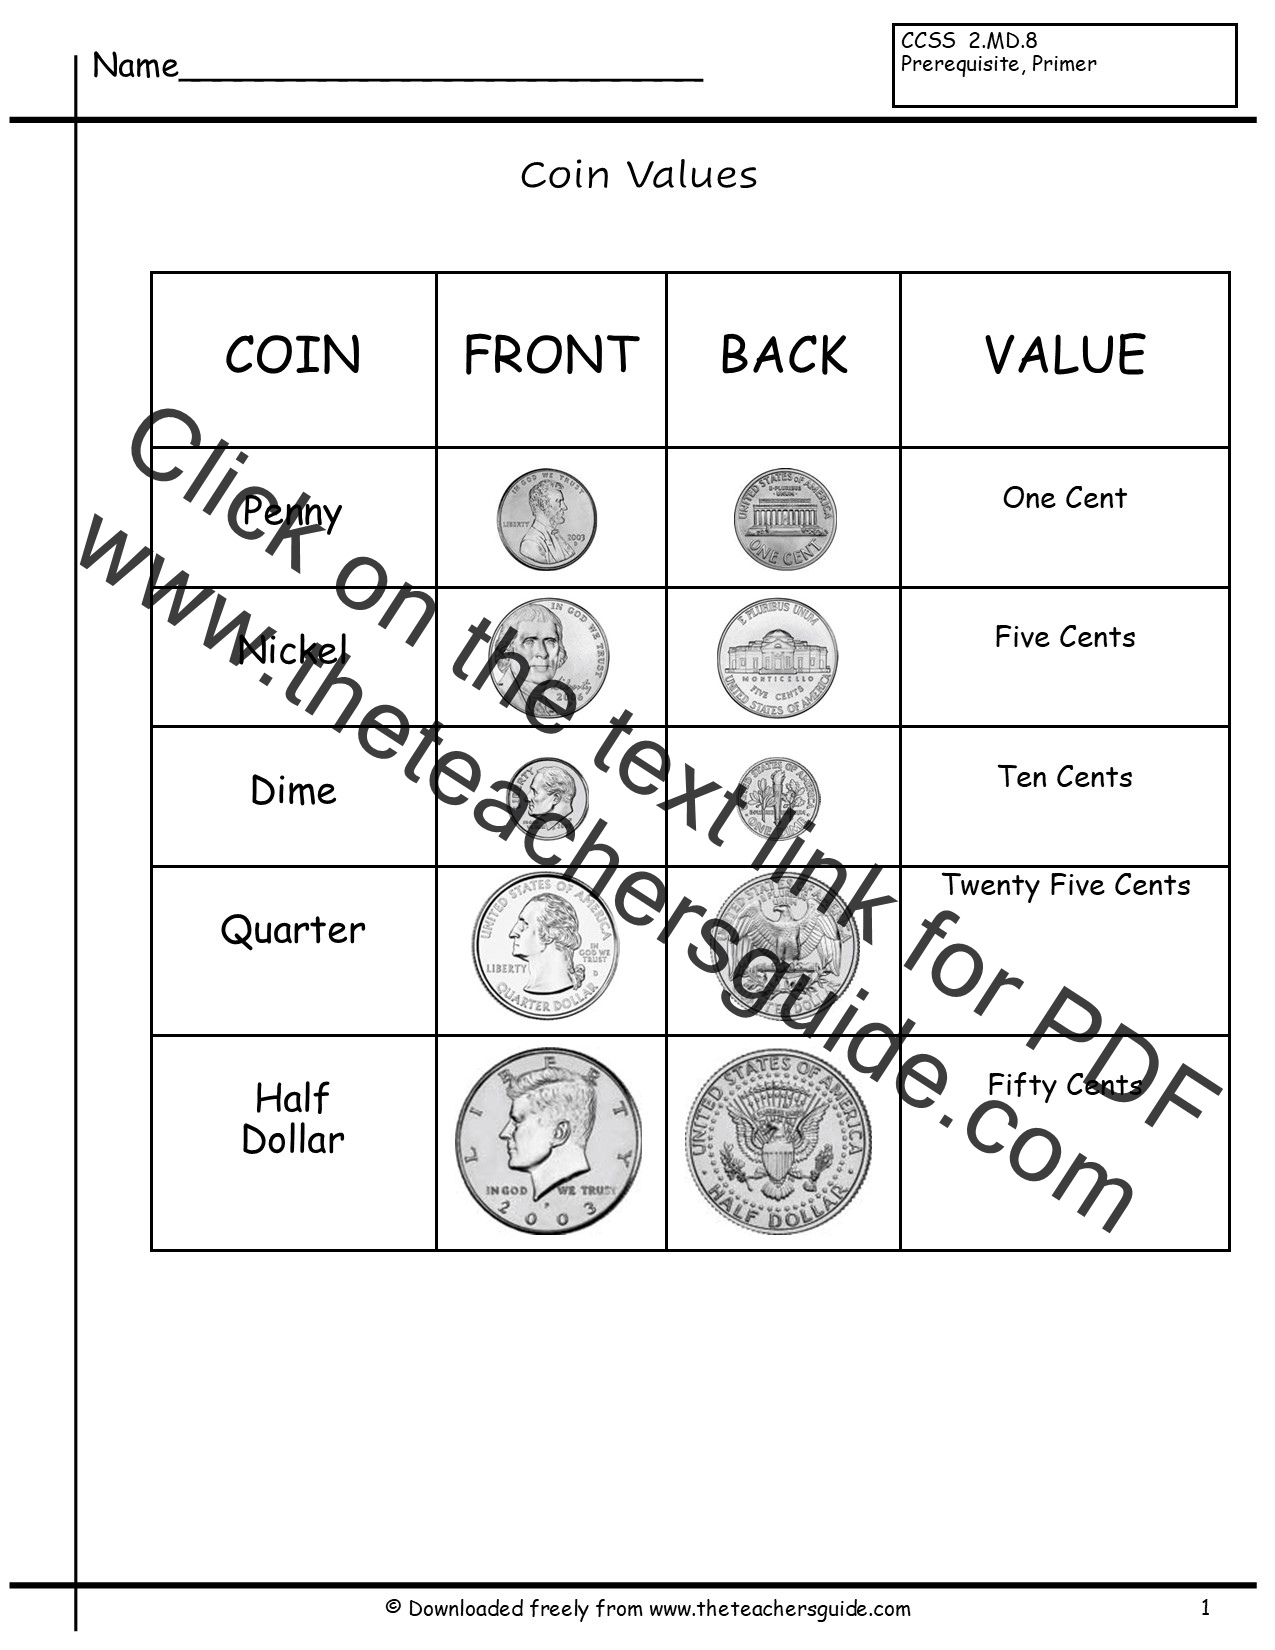 Worksheets Coin Values Worksheet counting coins worksheets from the teachers guide coin identification and values